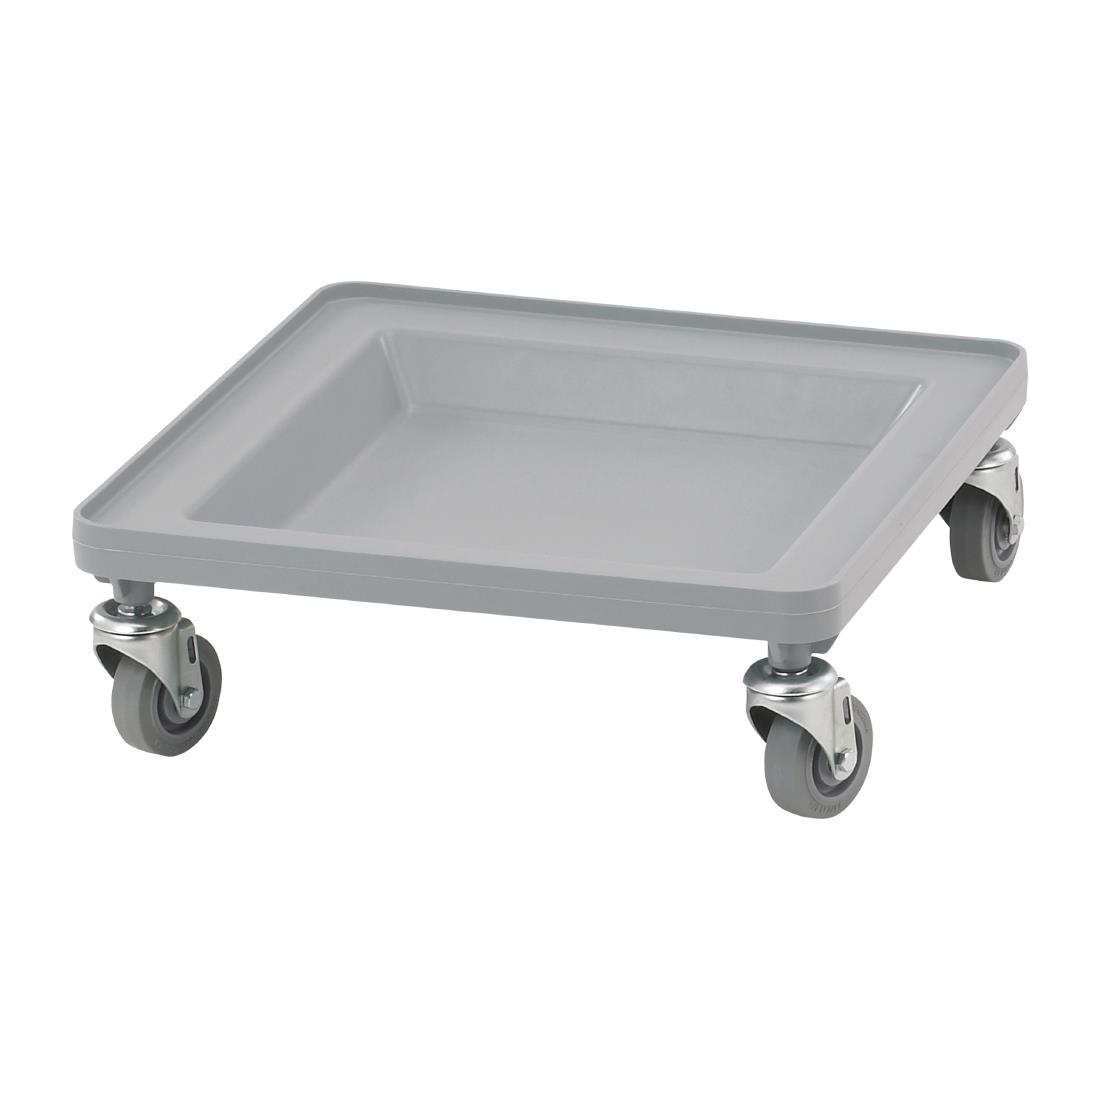 Image of Cambro Camdolly for Camracks